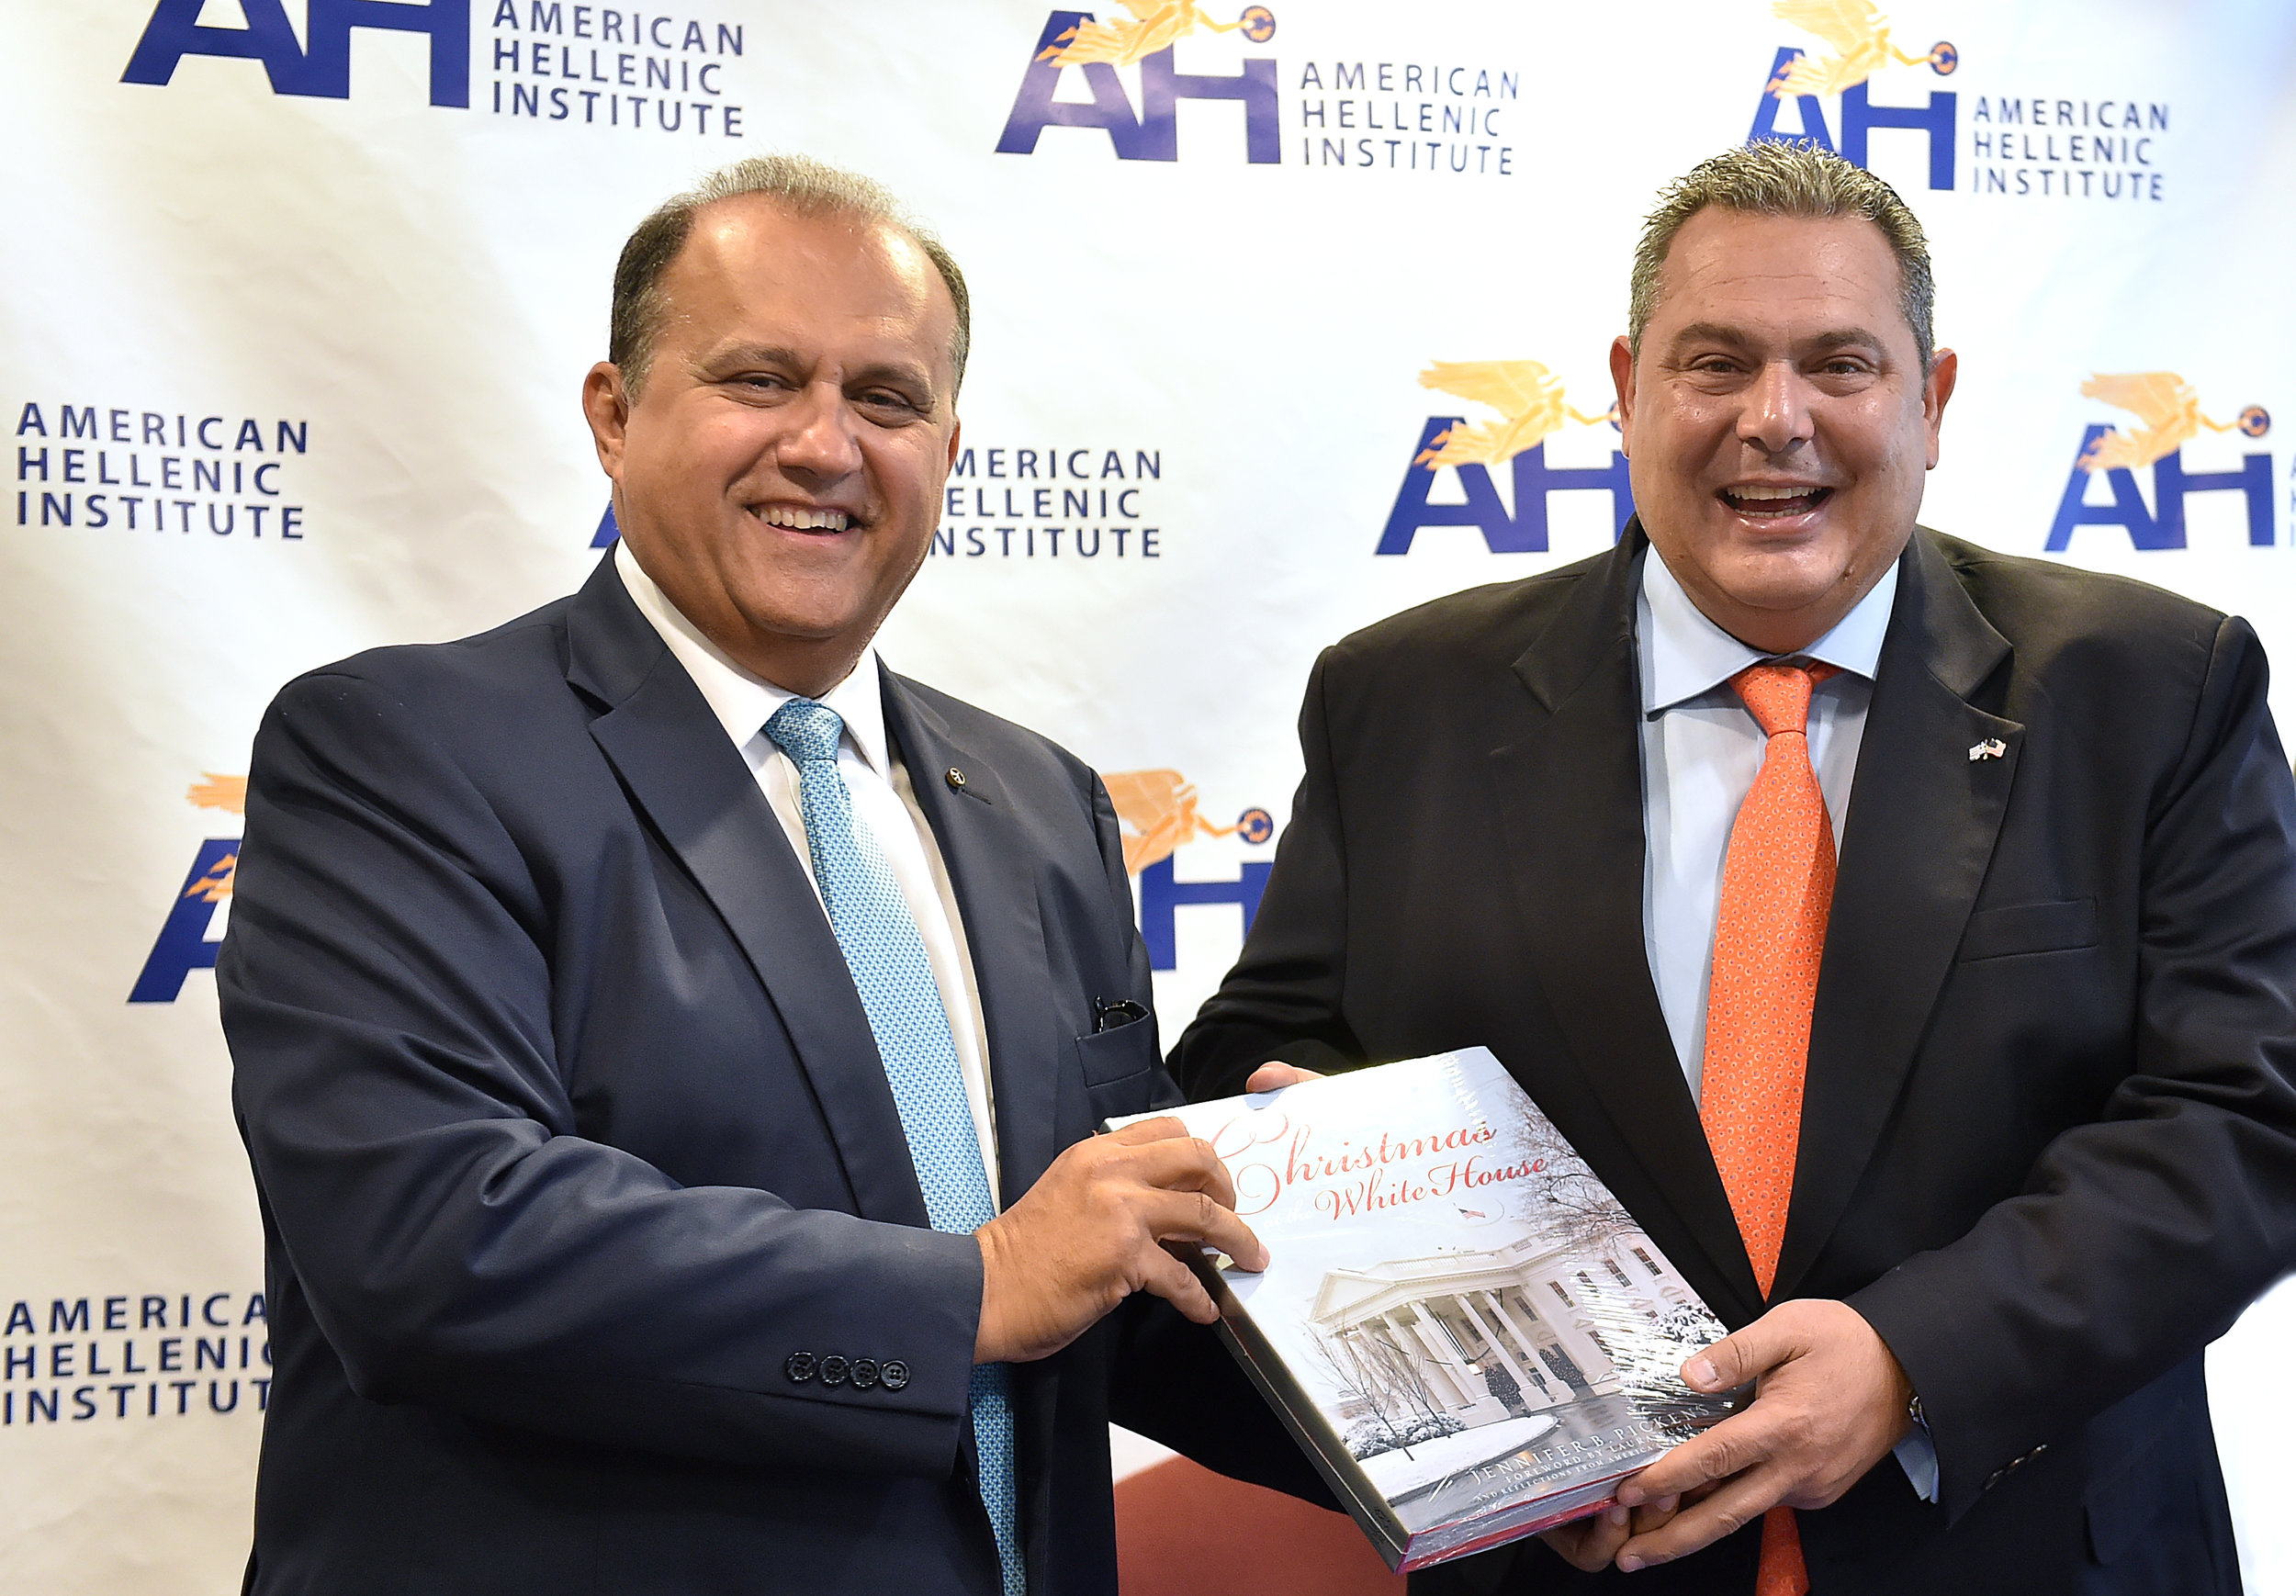 Nick Larigakis presents Minister Kammenos with a gift from the White House Historical Society.